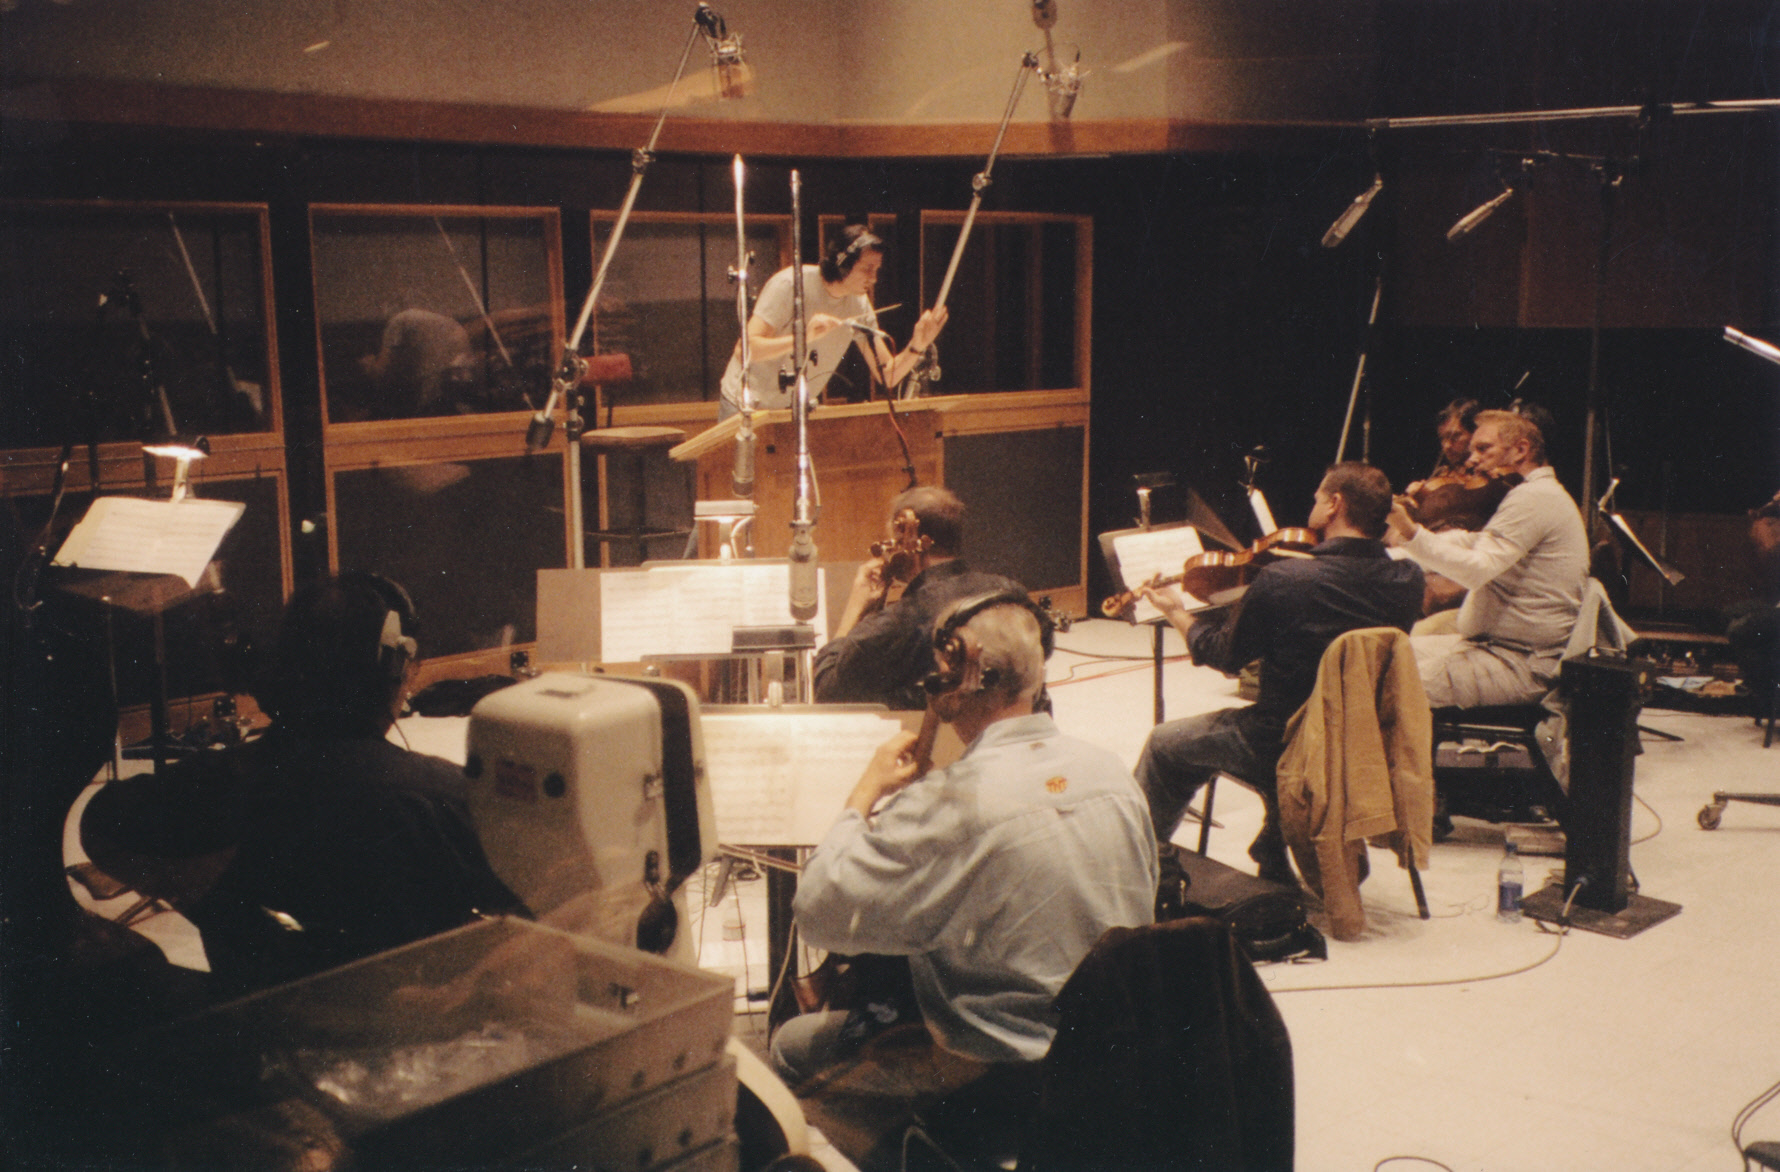 My Muse recording session at Capitol Records